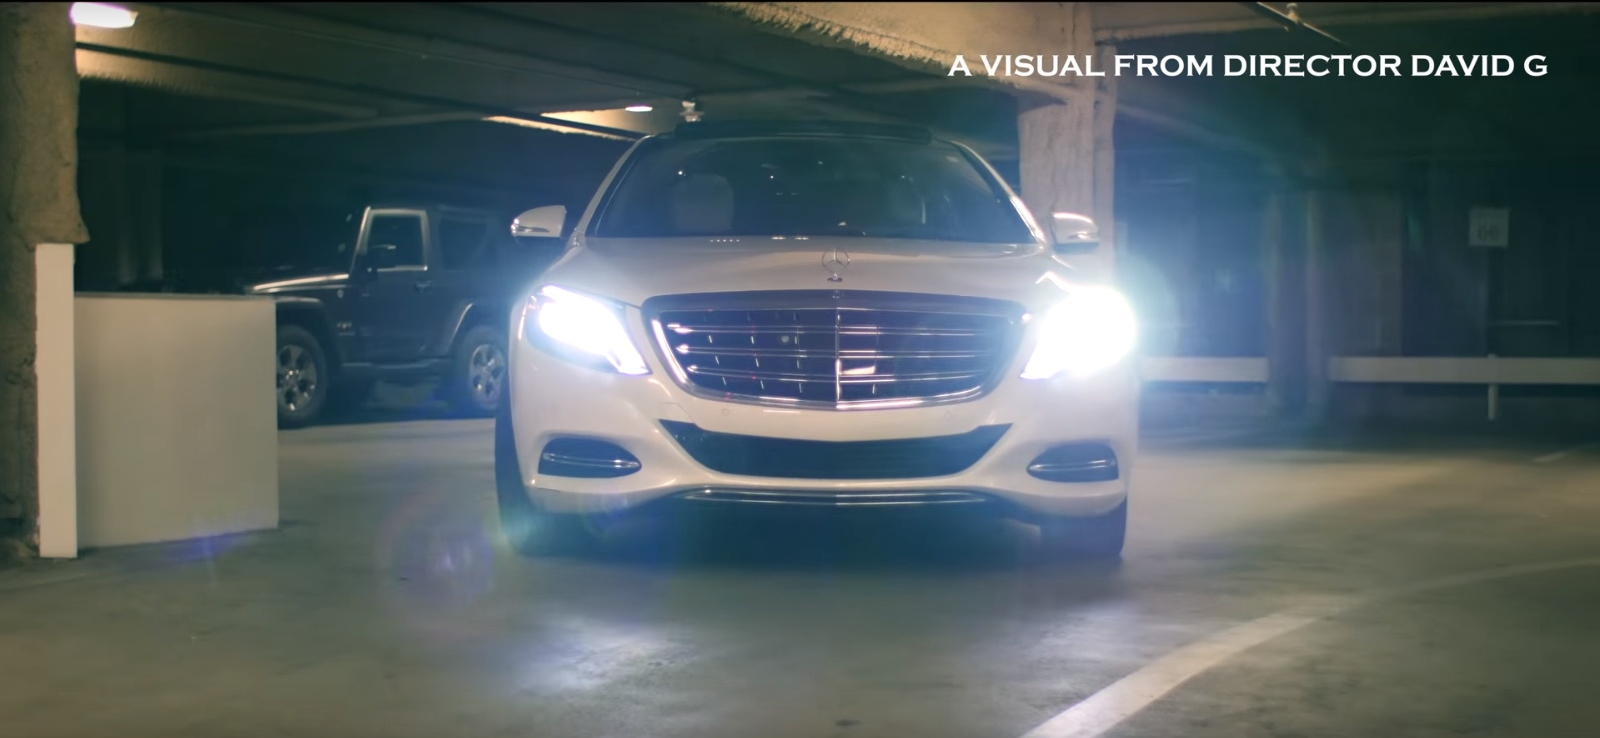 Mercedes-Maybach (Car) - YoungBoy Never Broke Again - Untouchable Official Music Video Product Placement